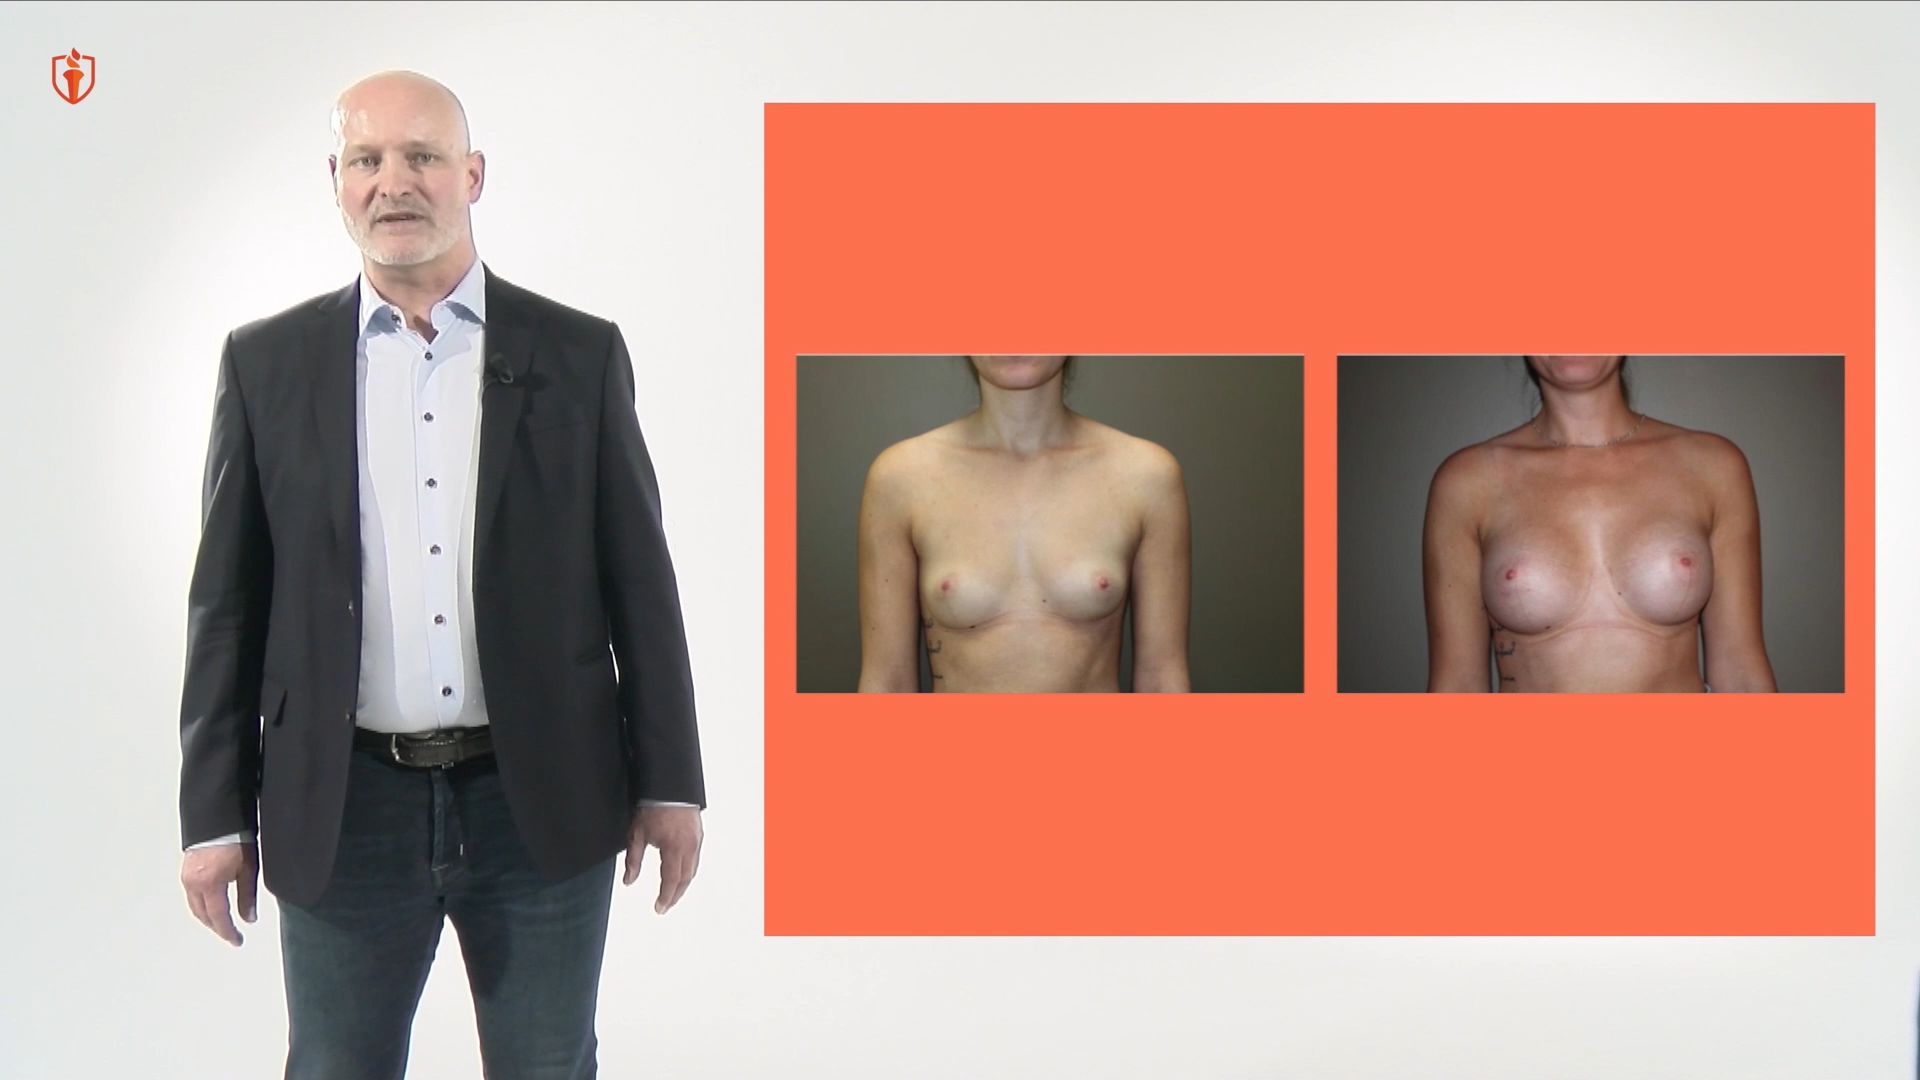 Breast augmentation with Dr. Baetge - Breast Academy New video